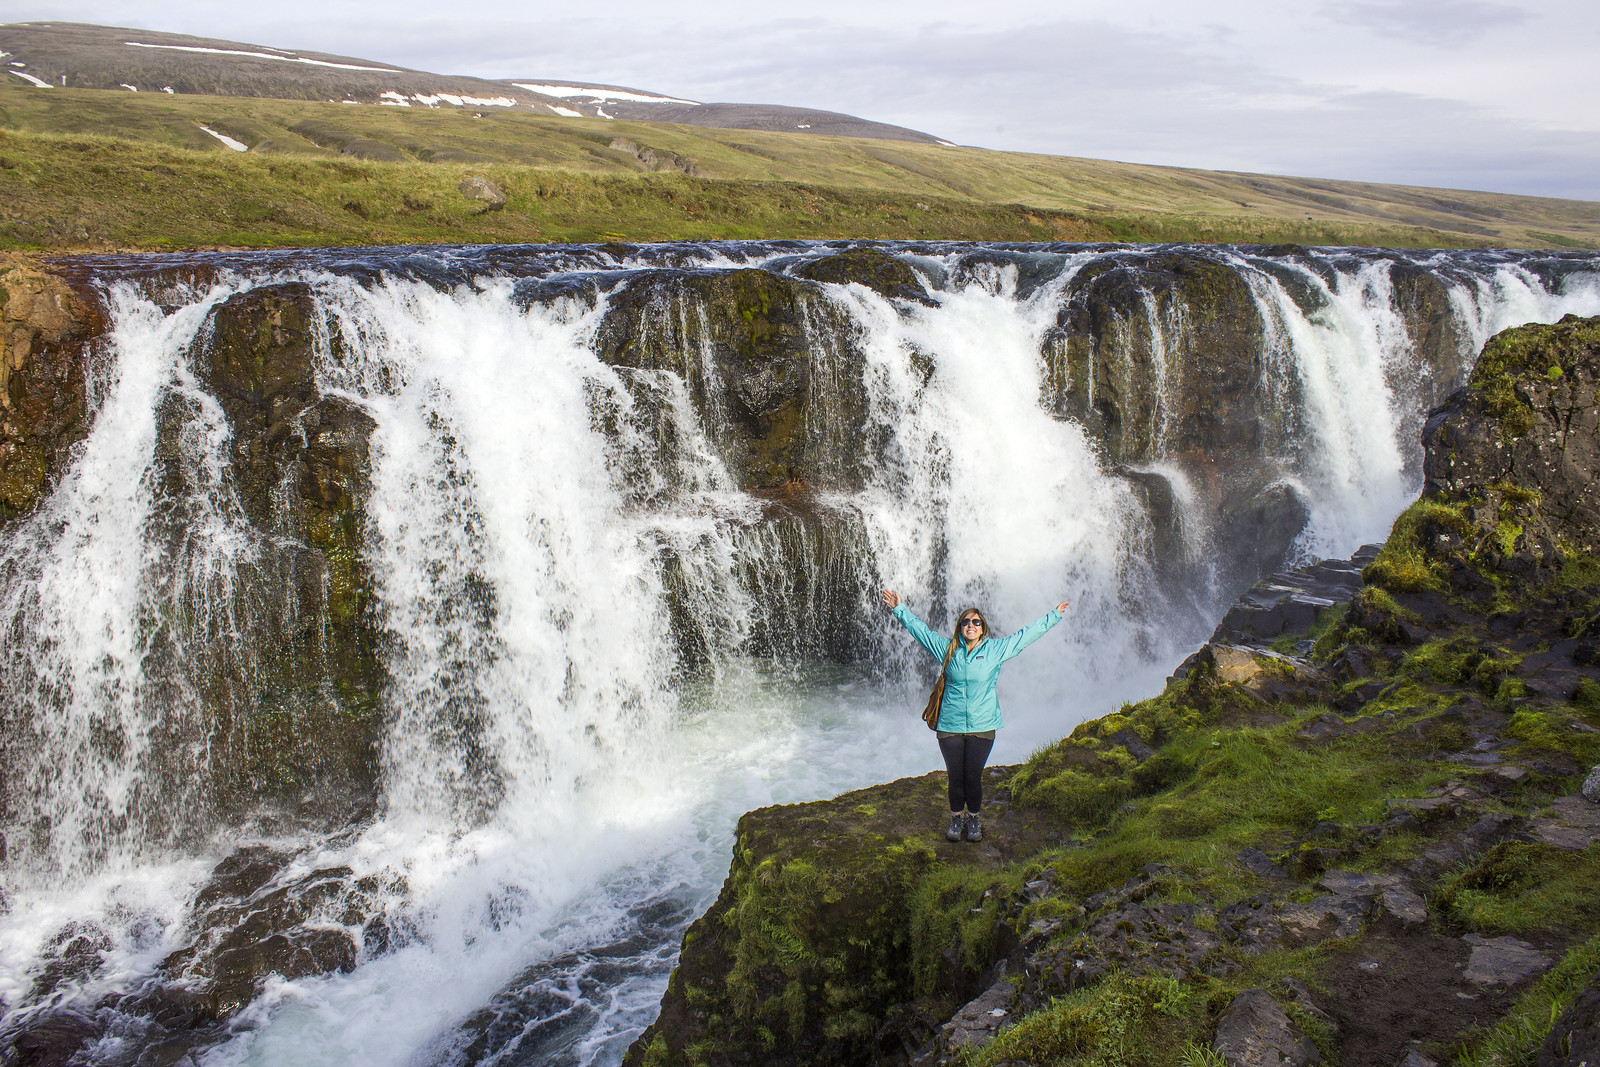 Iceland 2 Week Itinerary - A Complete Travel Guide - Iceland Travel Itinerary - Hvammstangi waterfall